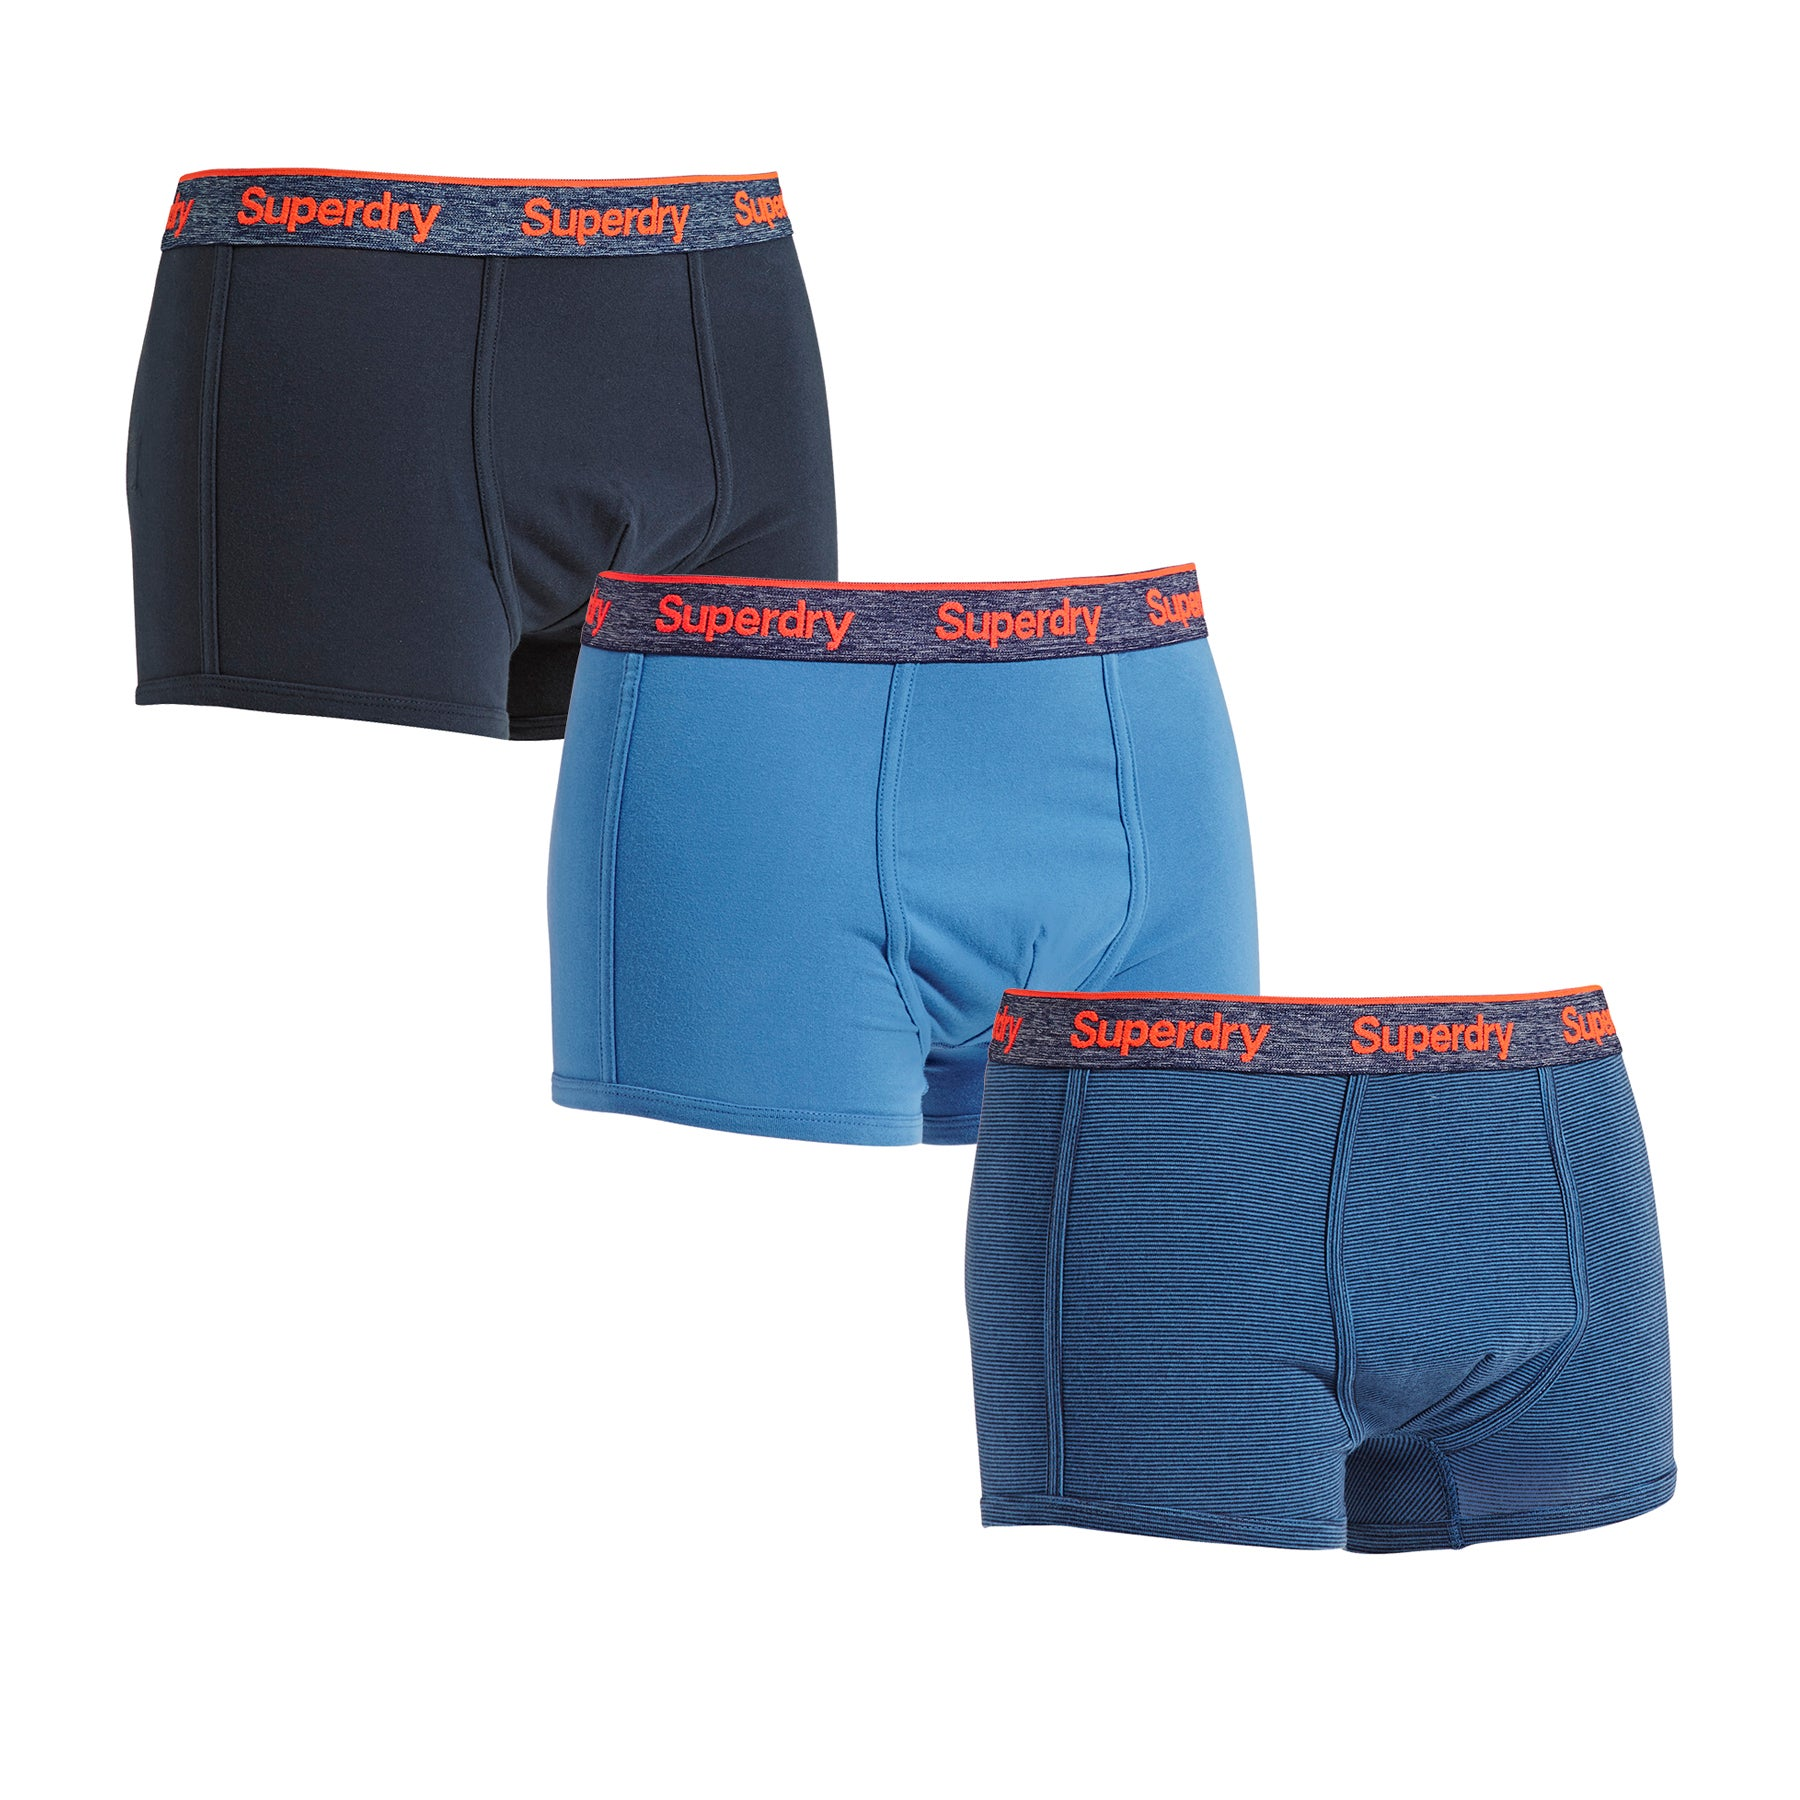 Superdry Orange Label Triple Pack Boxer-Shorts - Denim Blue Imperial Navy